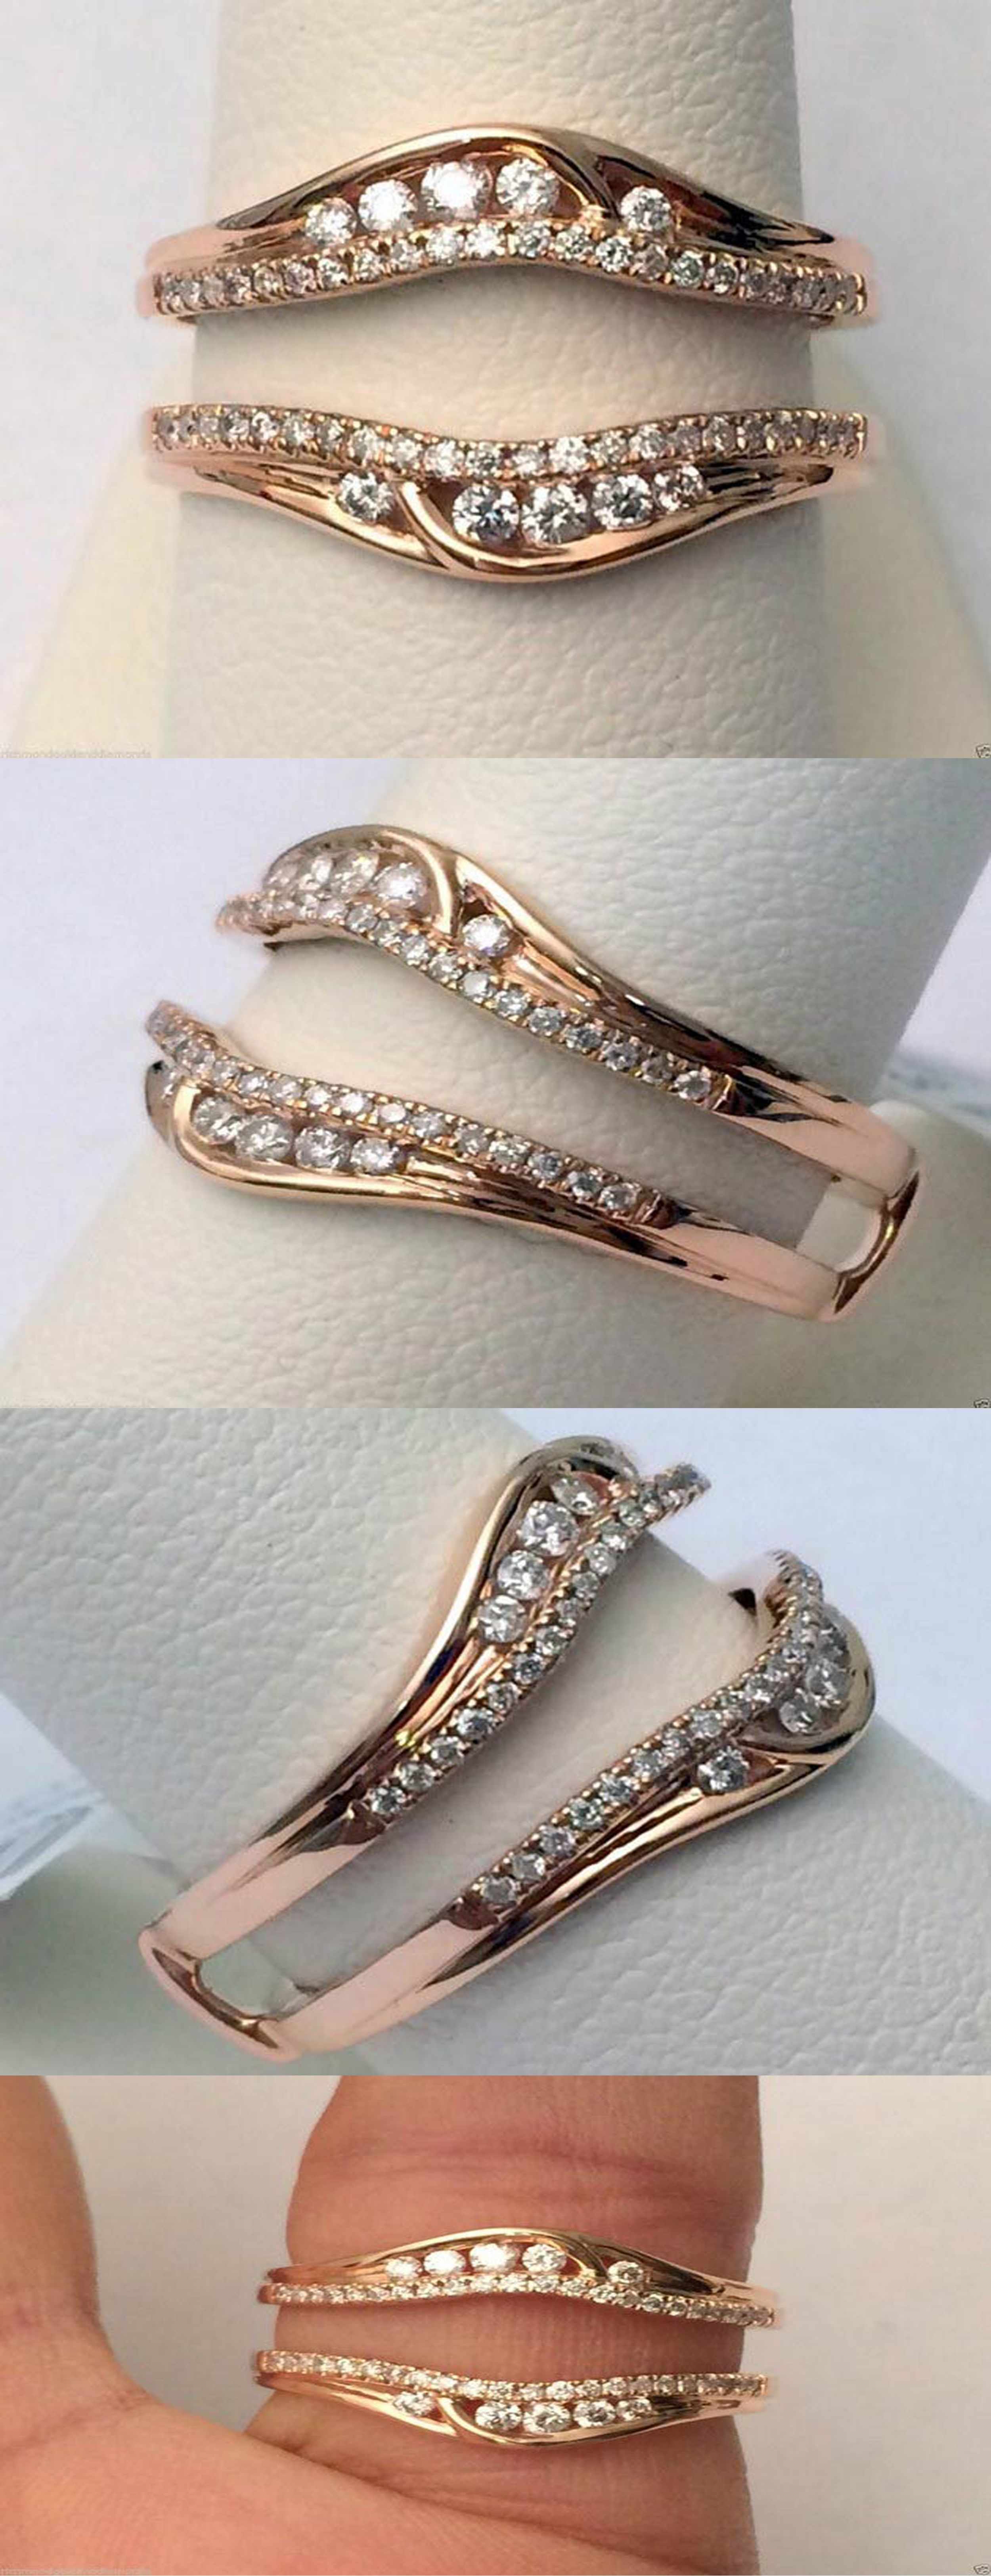 wedding ring wrap 14kt Rose Gold Solitaire Enhancer Round Diamonds Ring Guard Wrap Jacket Insert